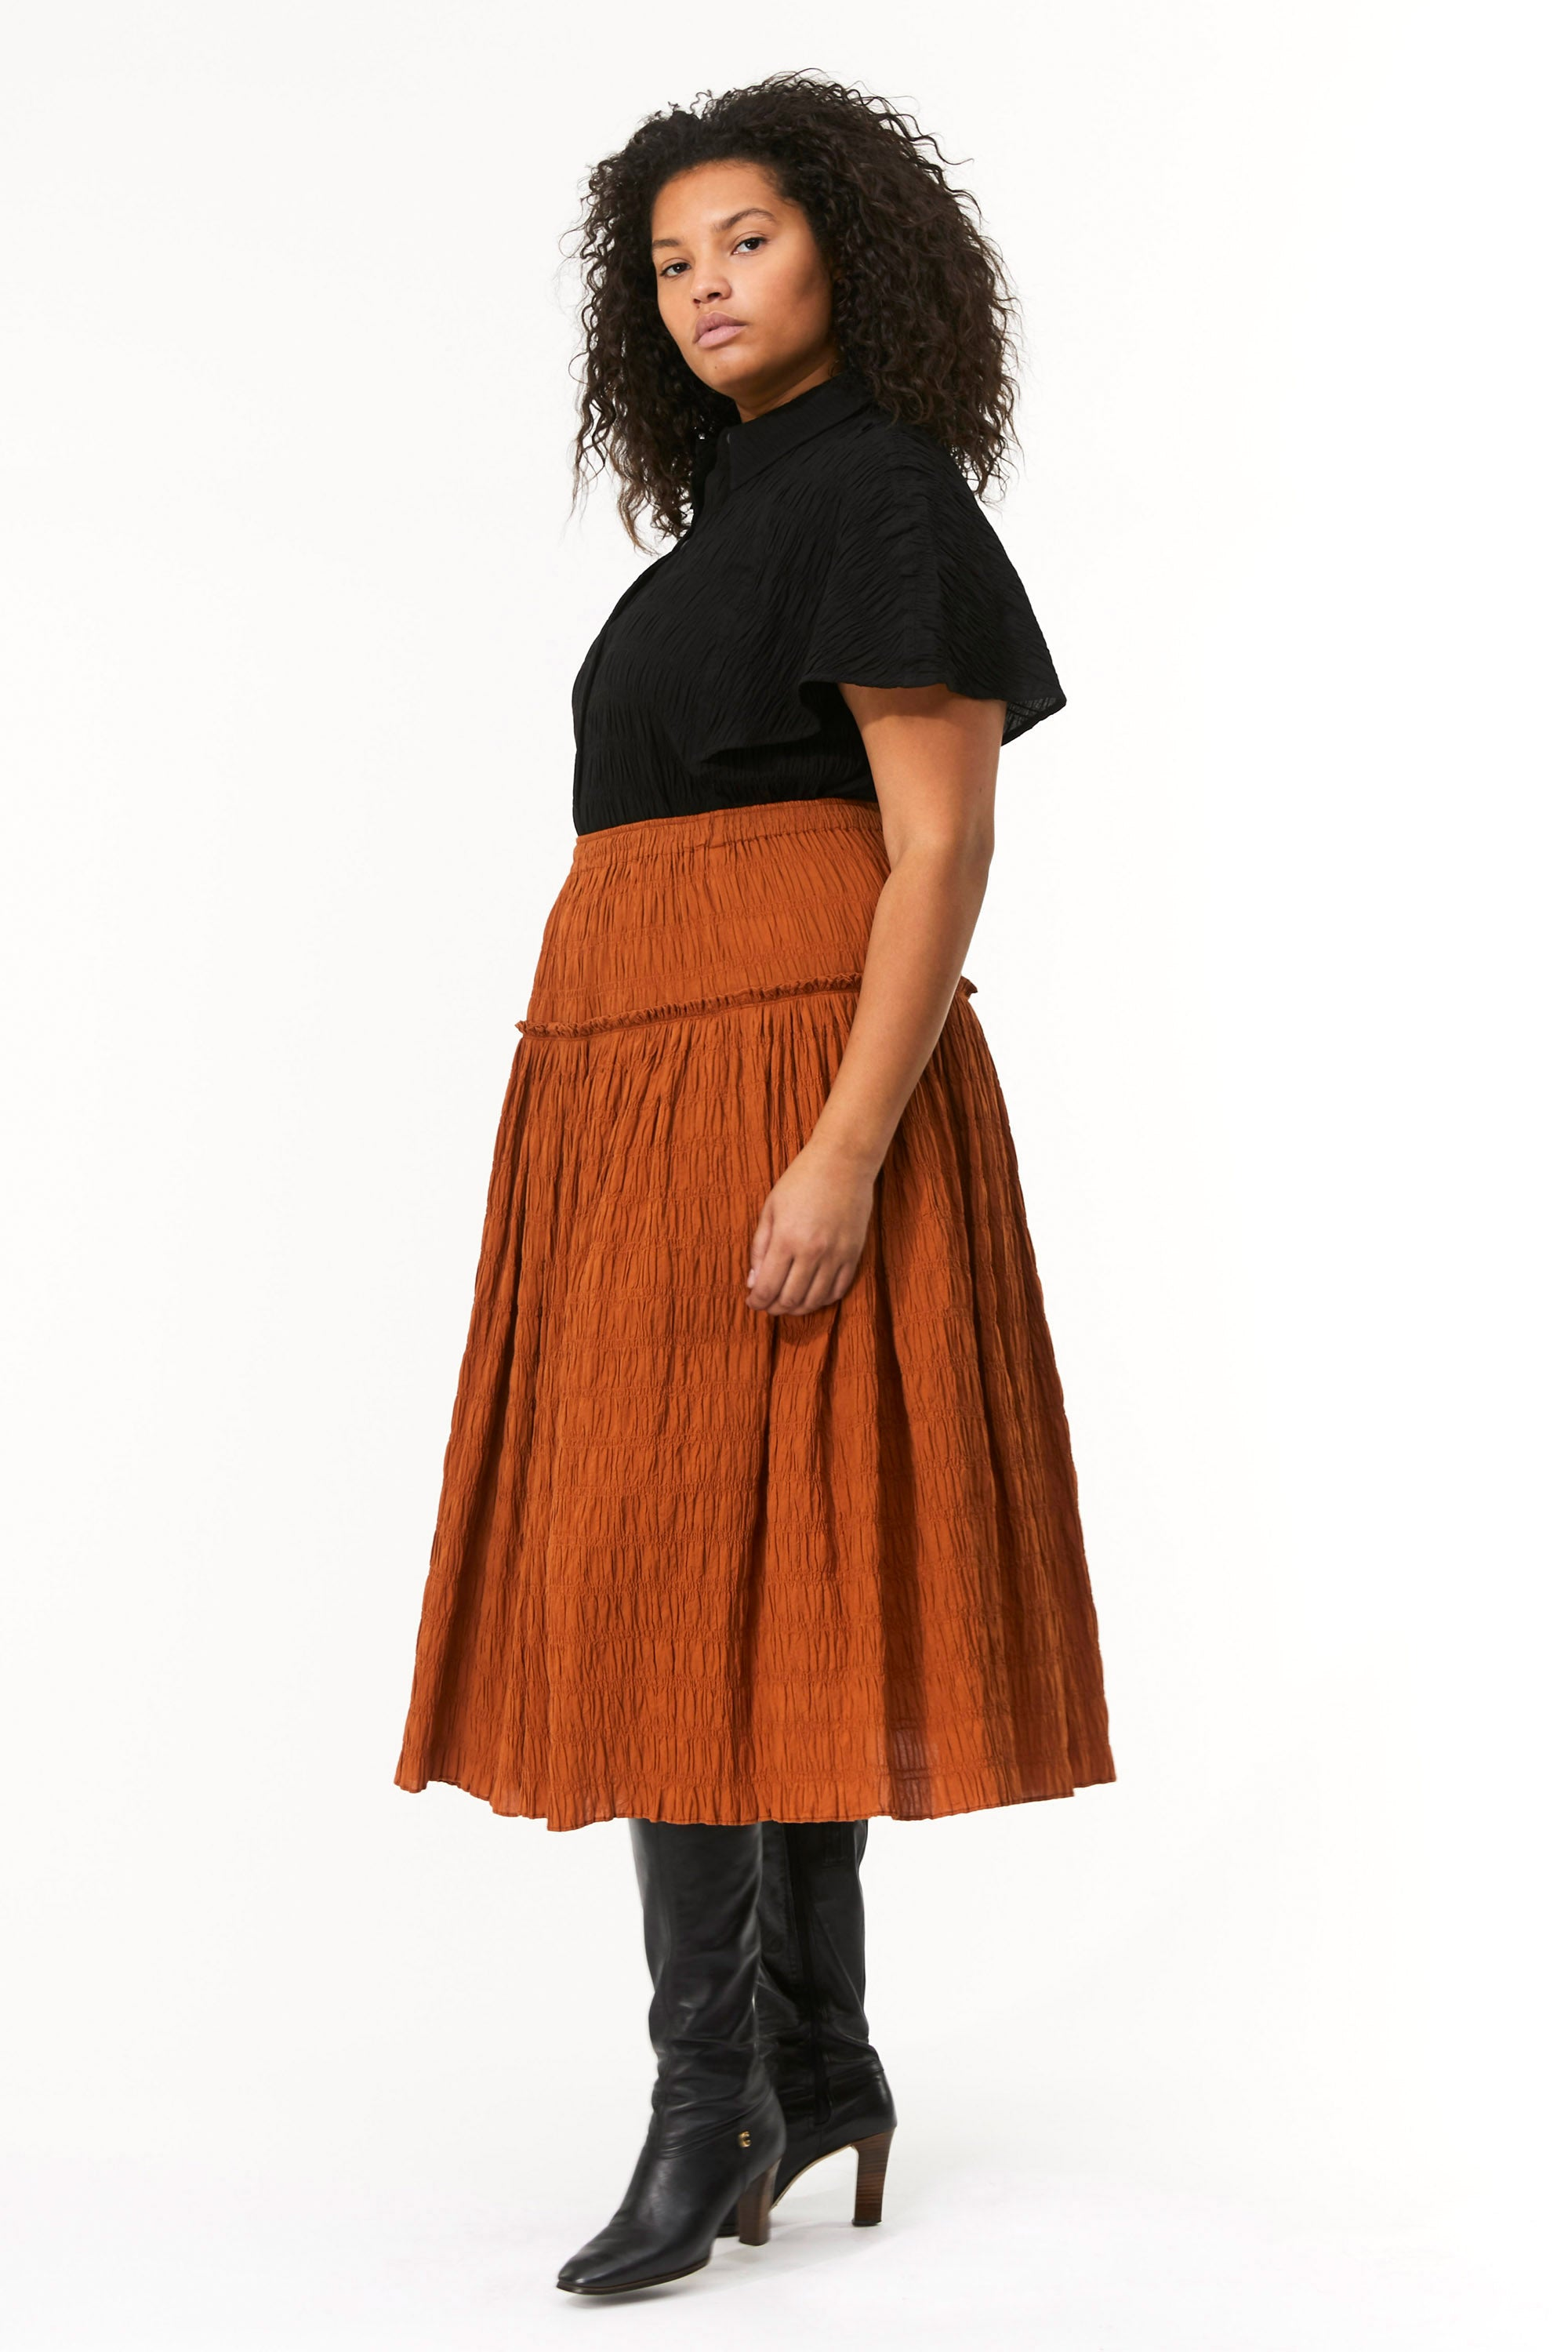 Extended Mara Hoffman Brown Alejandra Skirt in organic cotton (side detail)